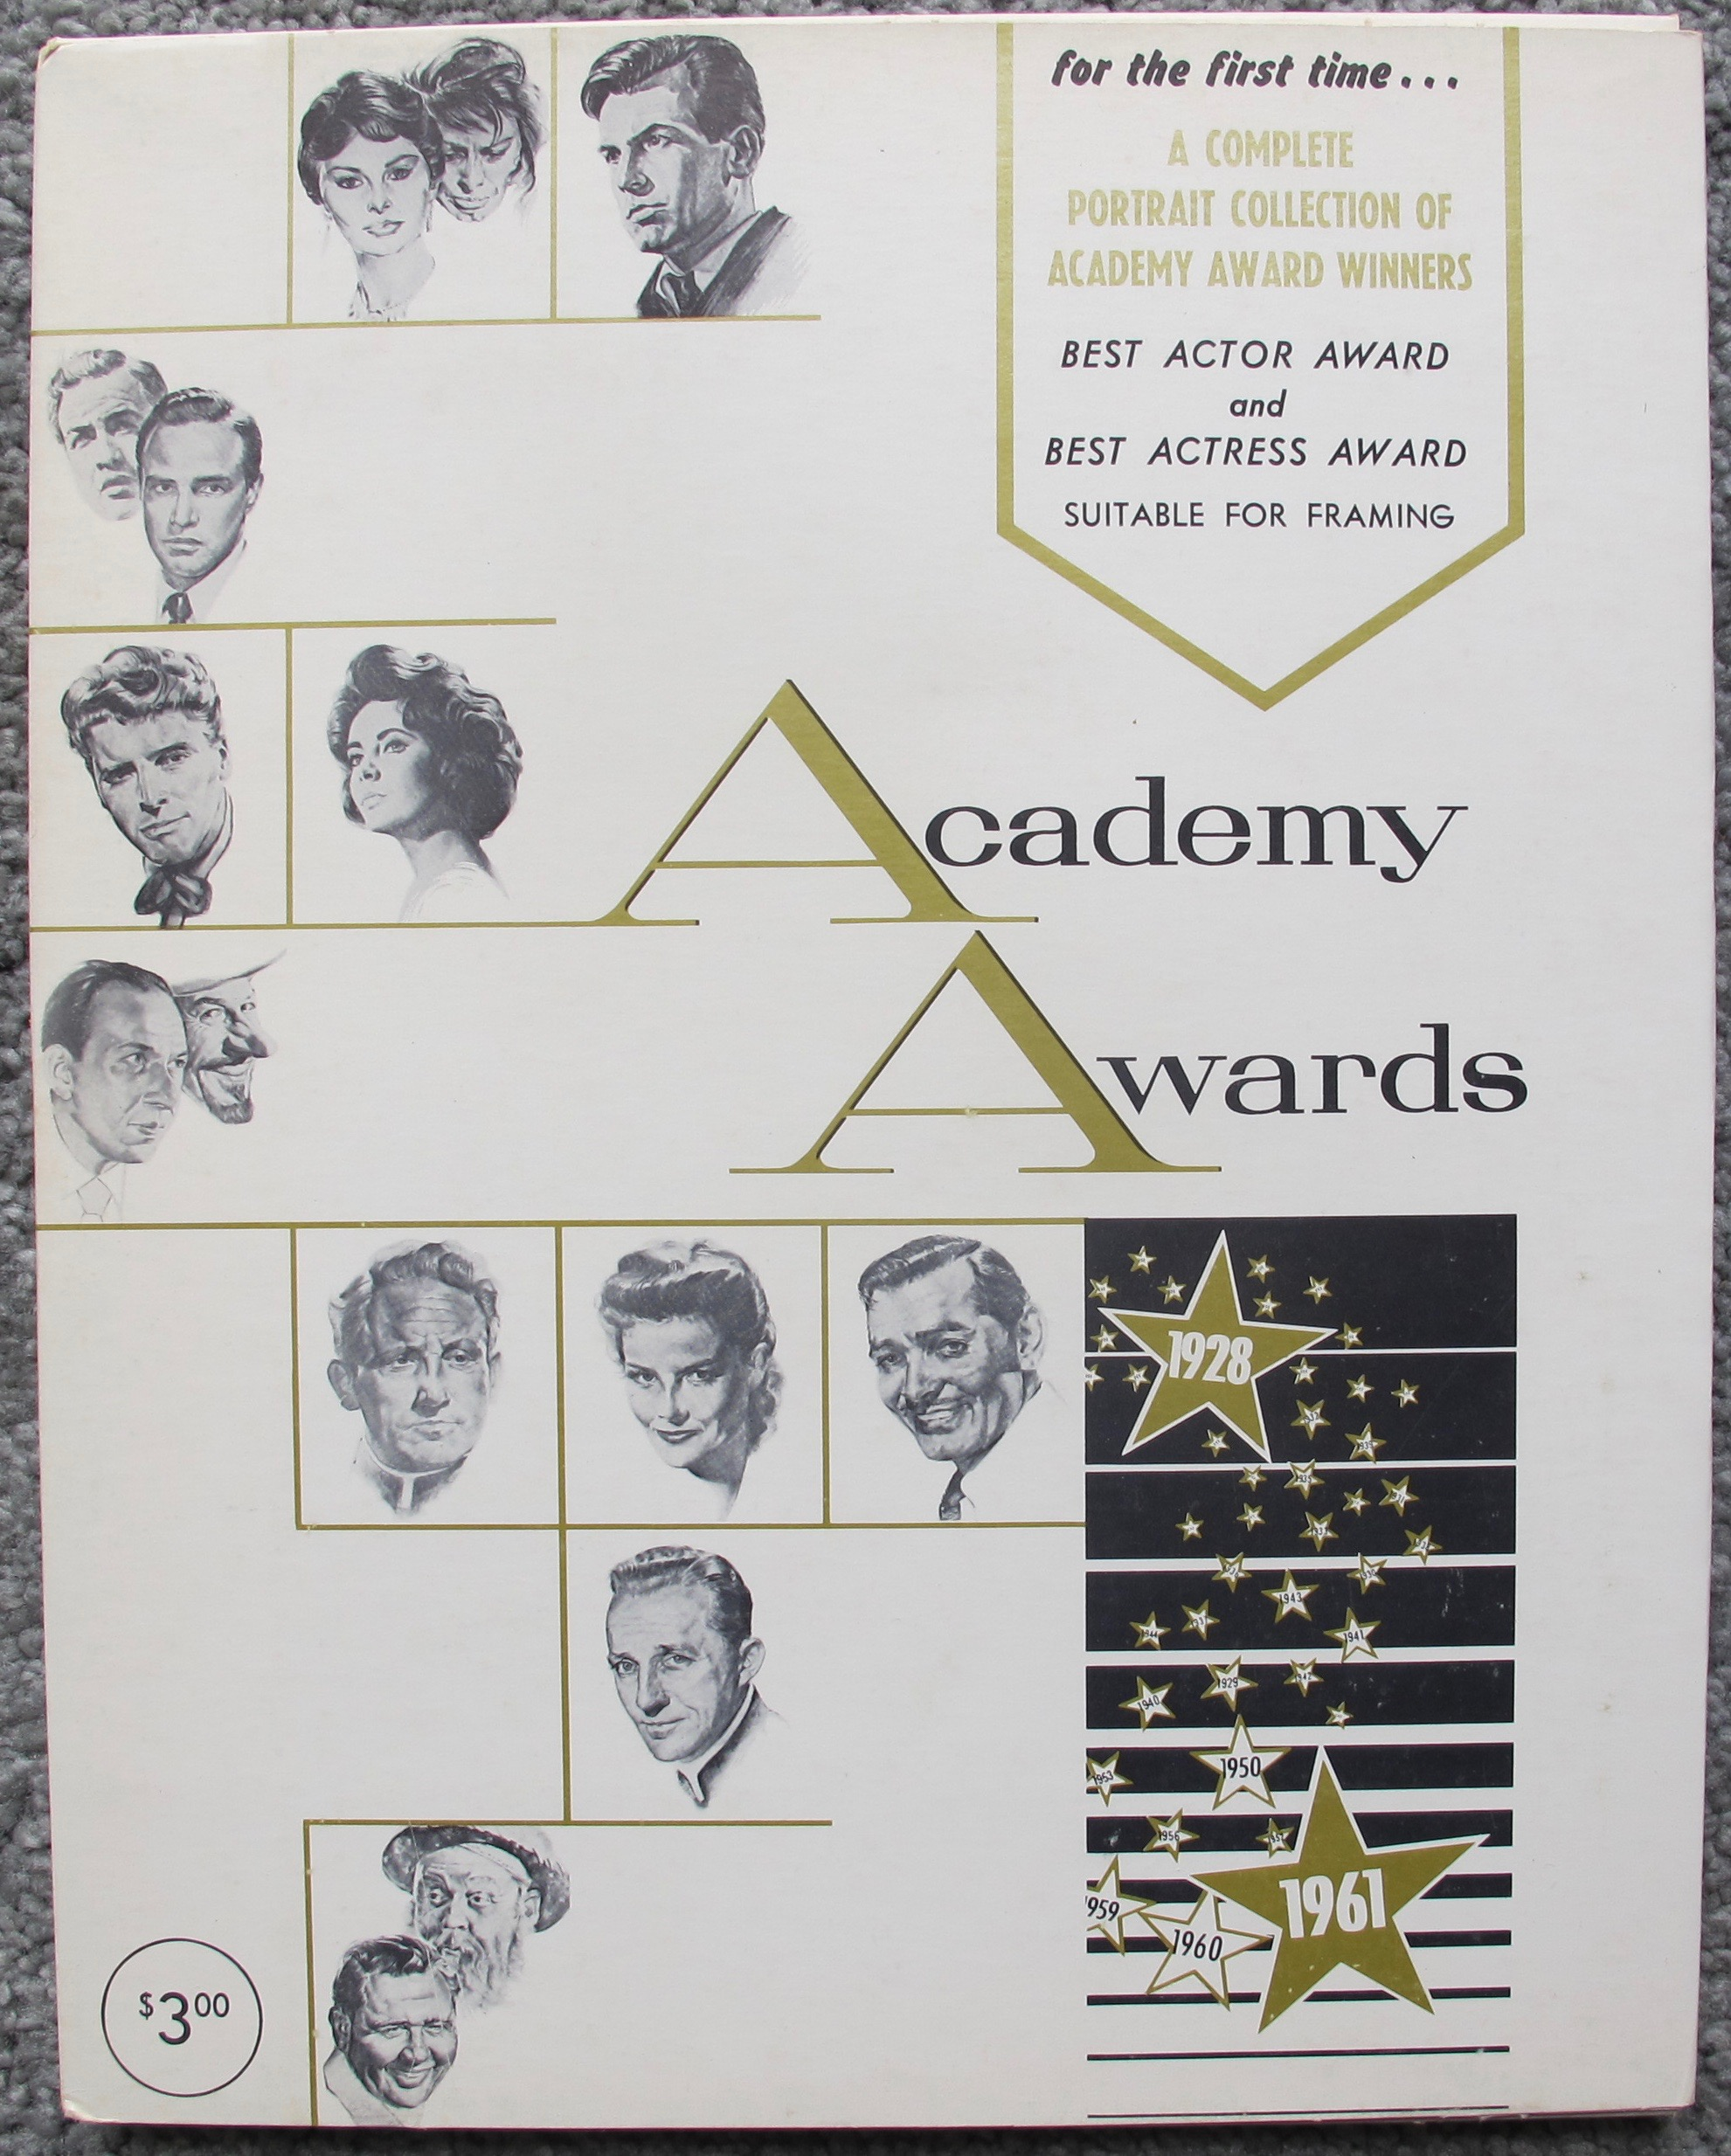 Academy Awards Best Actor & Actress Portraits 1928 - 1961 by Nicholas Volpe Set of 69 Prints from Brown Derby